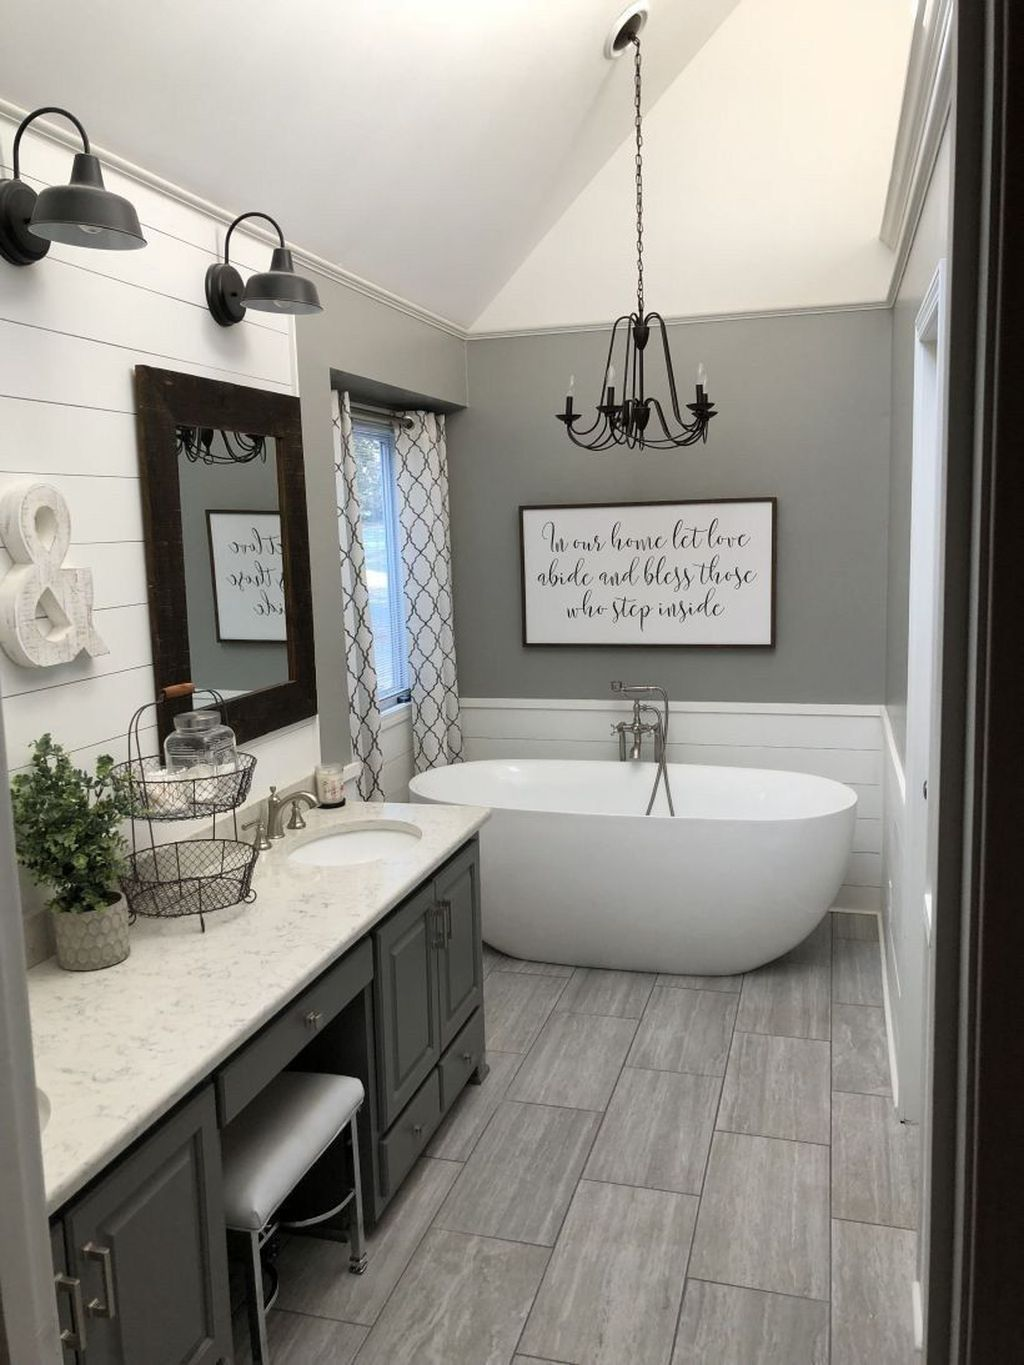 48 Simple Master Bathroom Renovation Ideas Bathroom Remodel Master Farmhouse Bathroom Decor Bathrooms Remodel